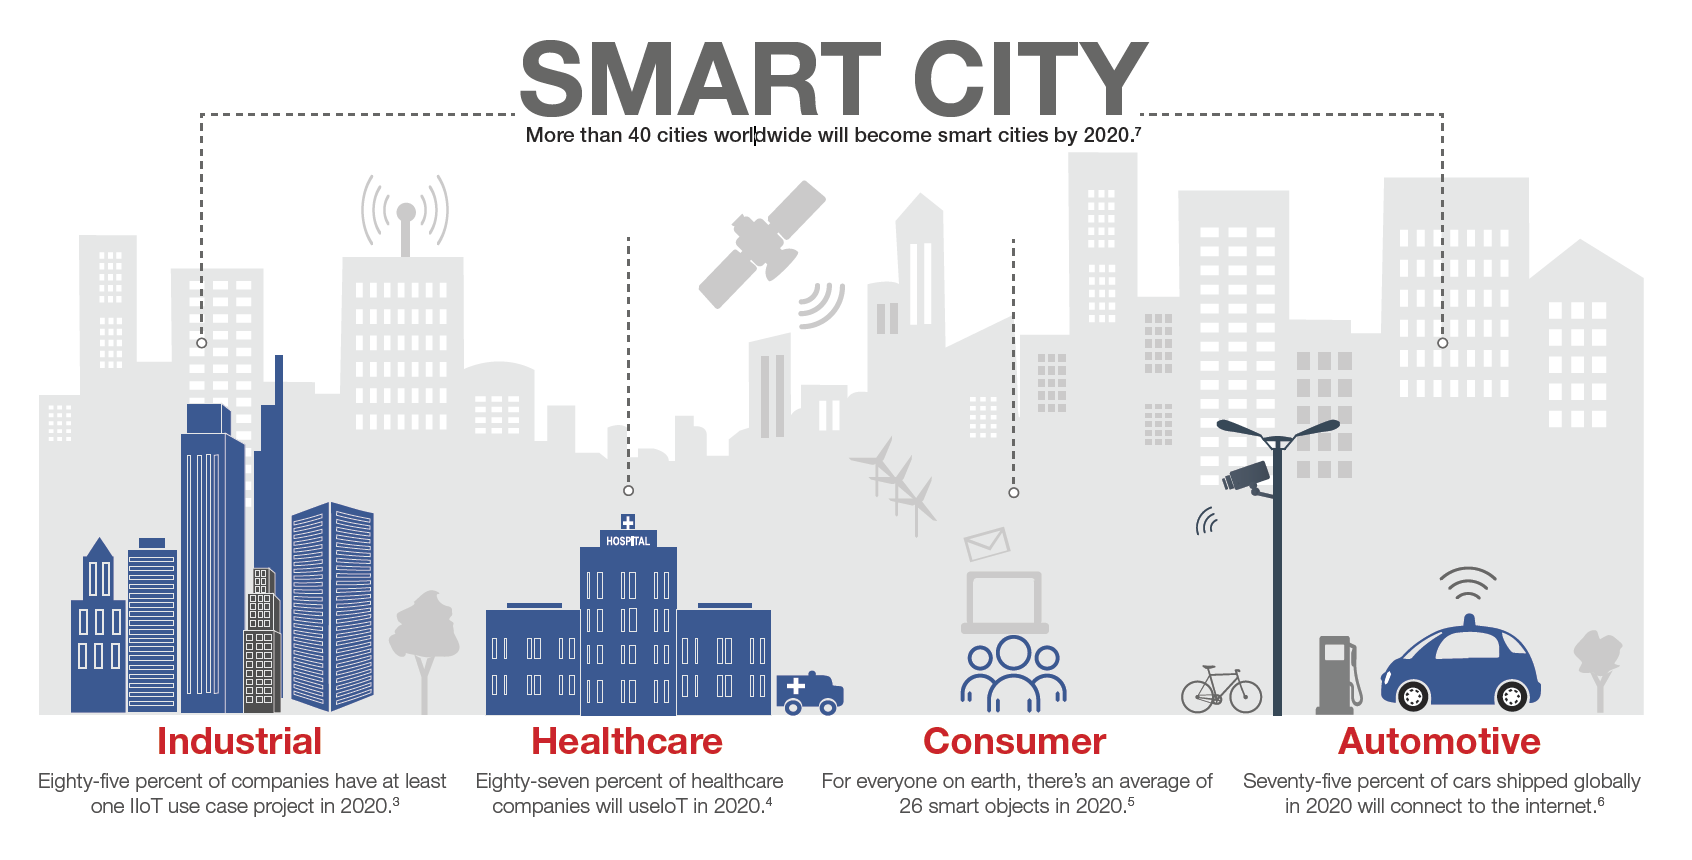 IoT is rapidly growing in every vertical